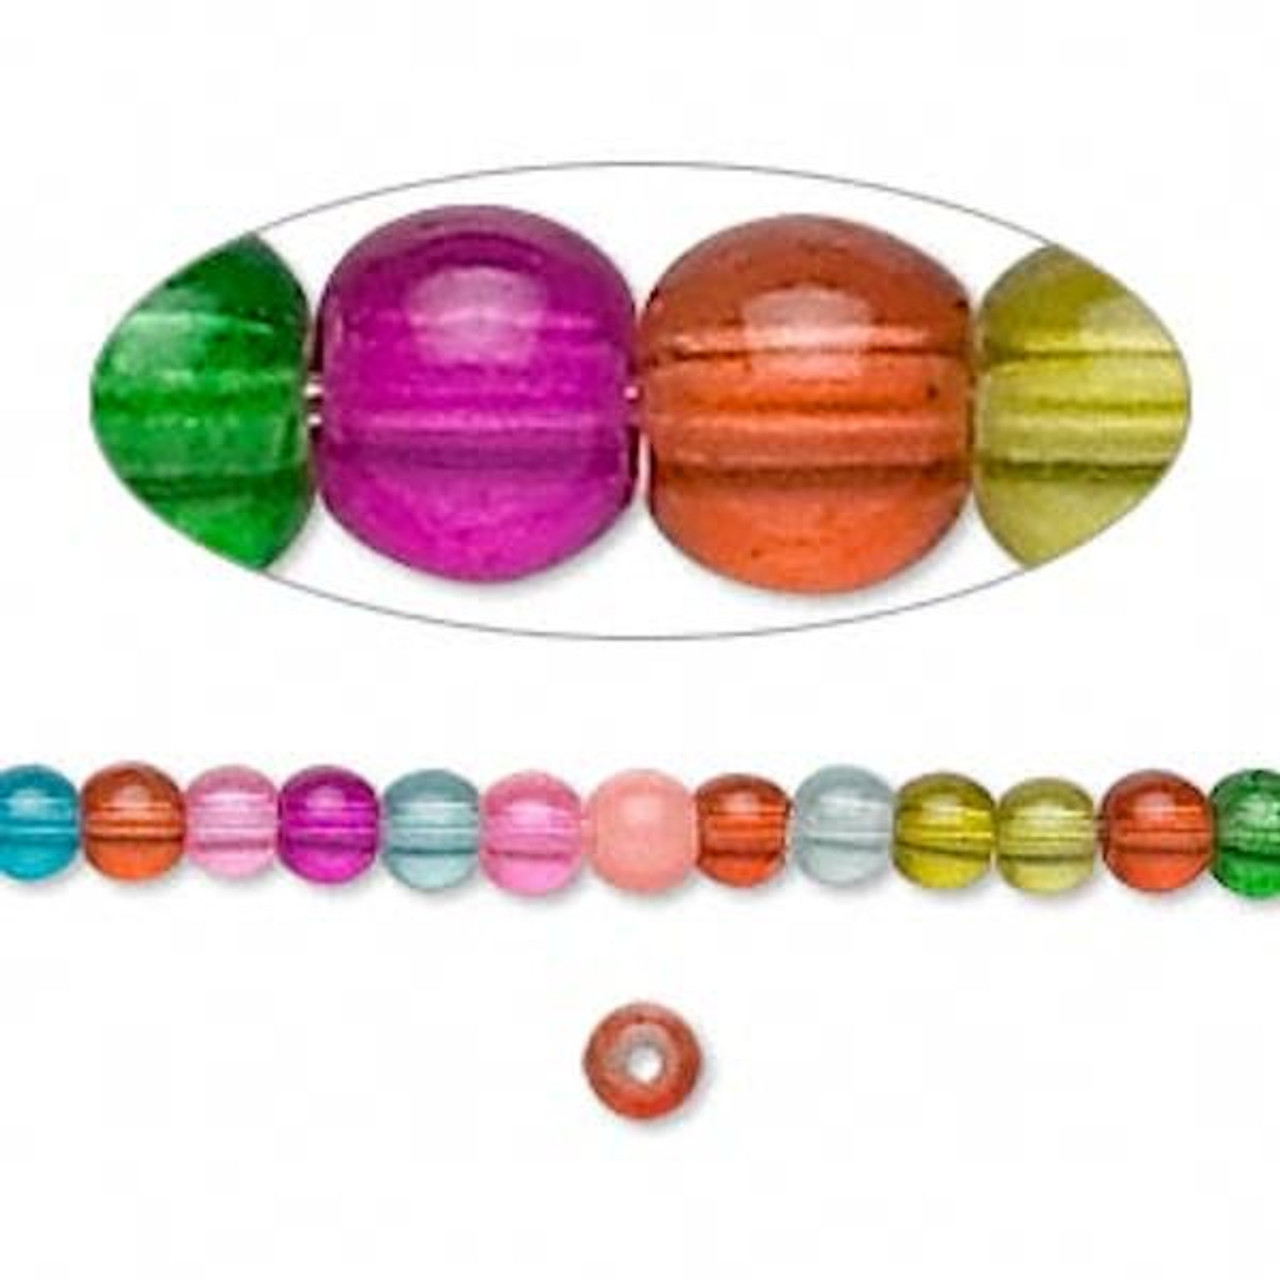 36 Inch Strand of Jewel Glass Beads 4MM